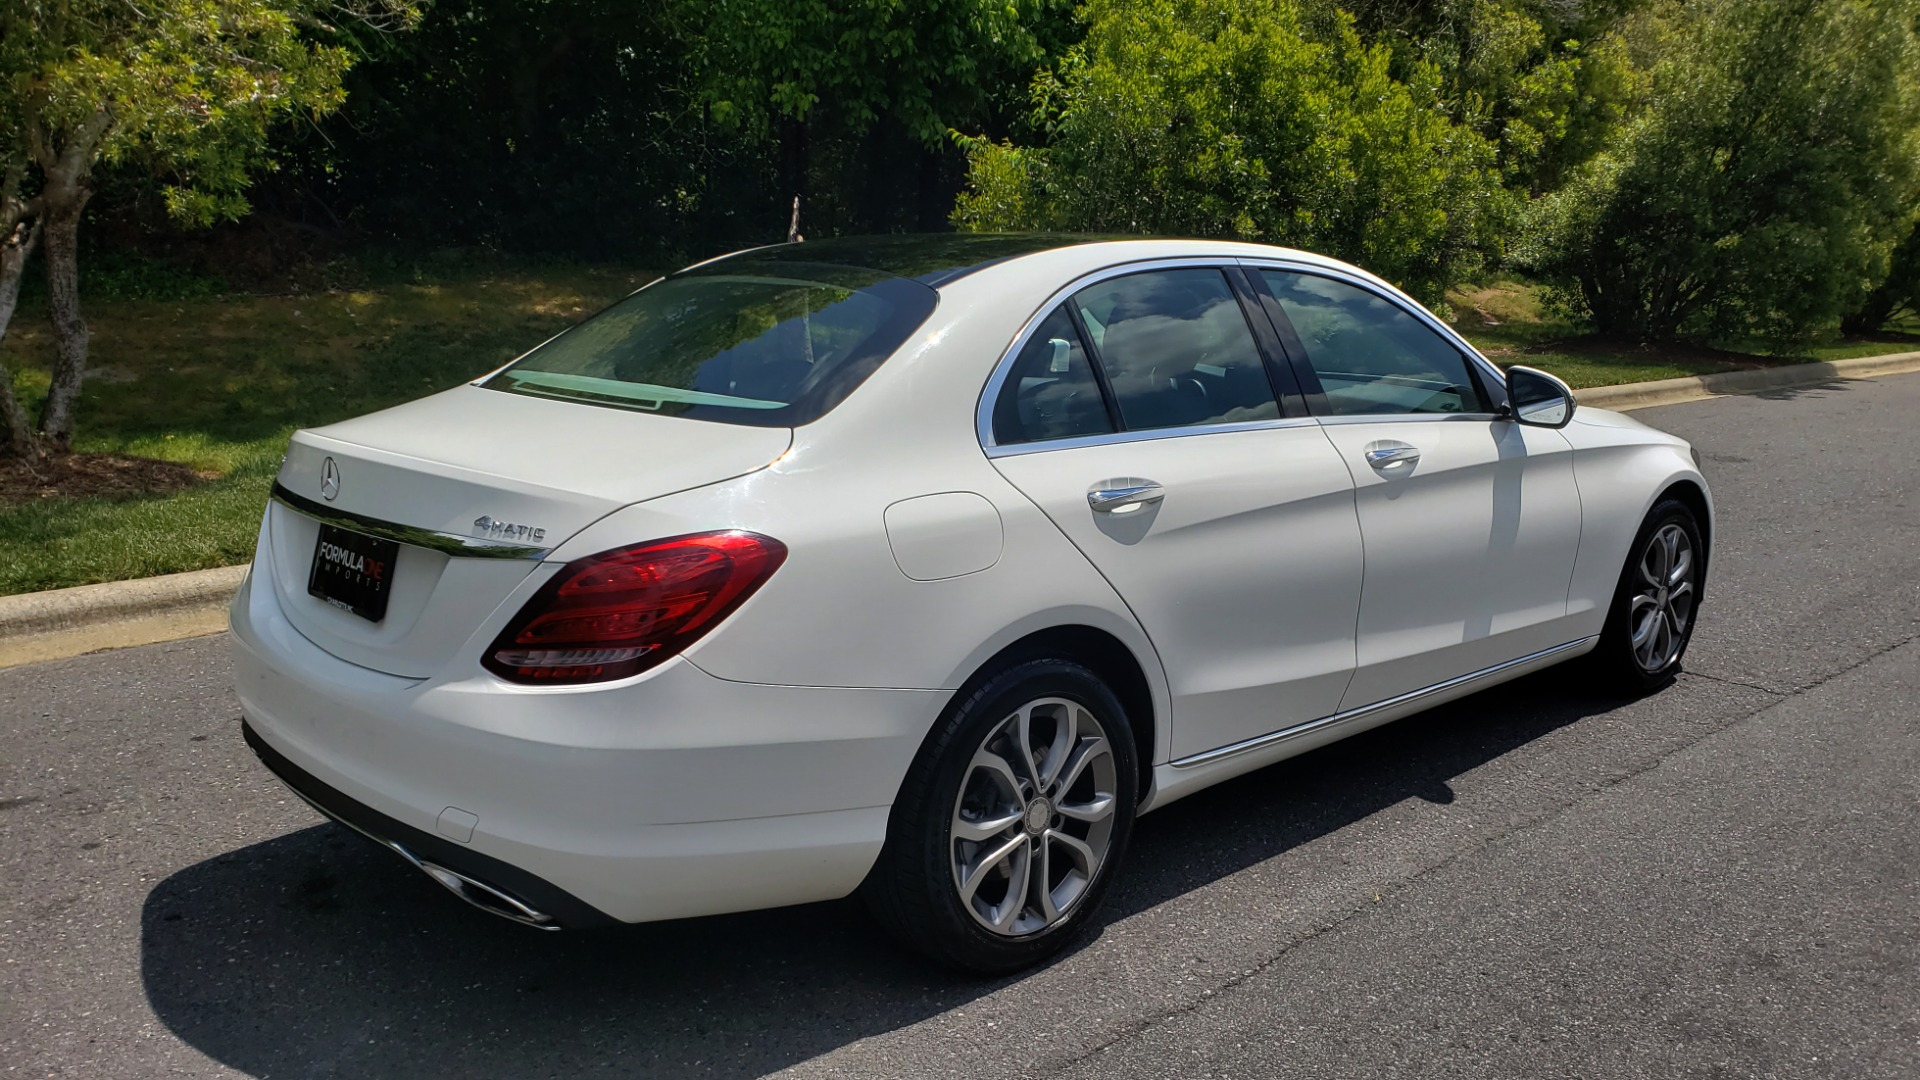 Used 2016 Mercedes-Benz C-CLASS C 300 4MATIC PREMIUM / PANO-ROOF / MULTI MEDIA PKG / REARVIEW for sale Sold at Formula Imports in Charlotte NC 28227 6